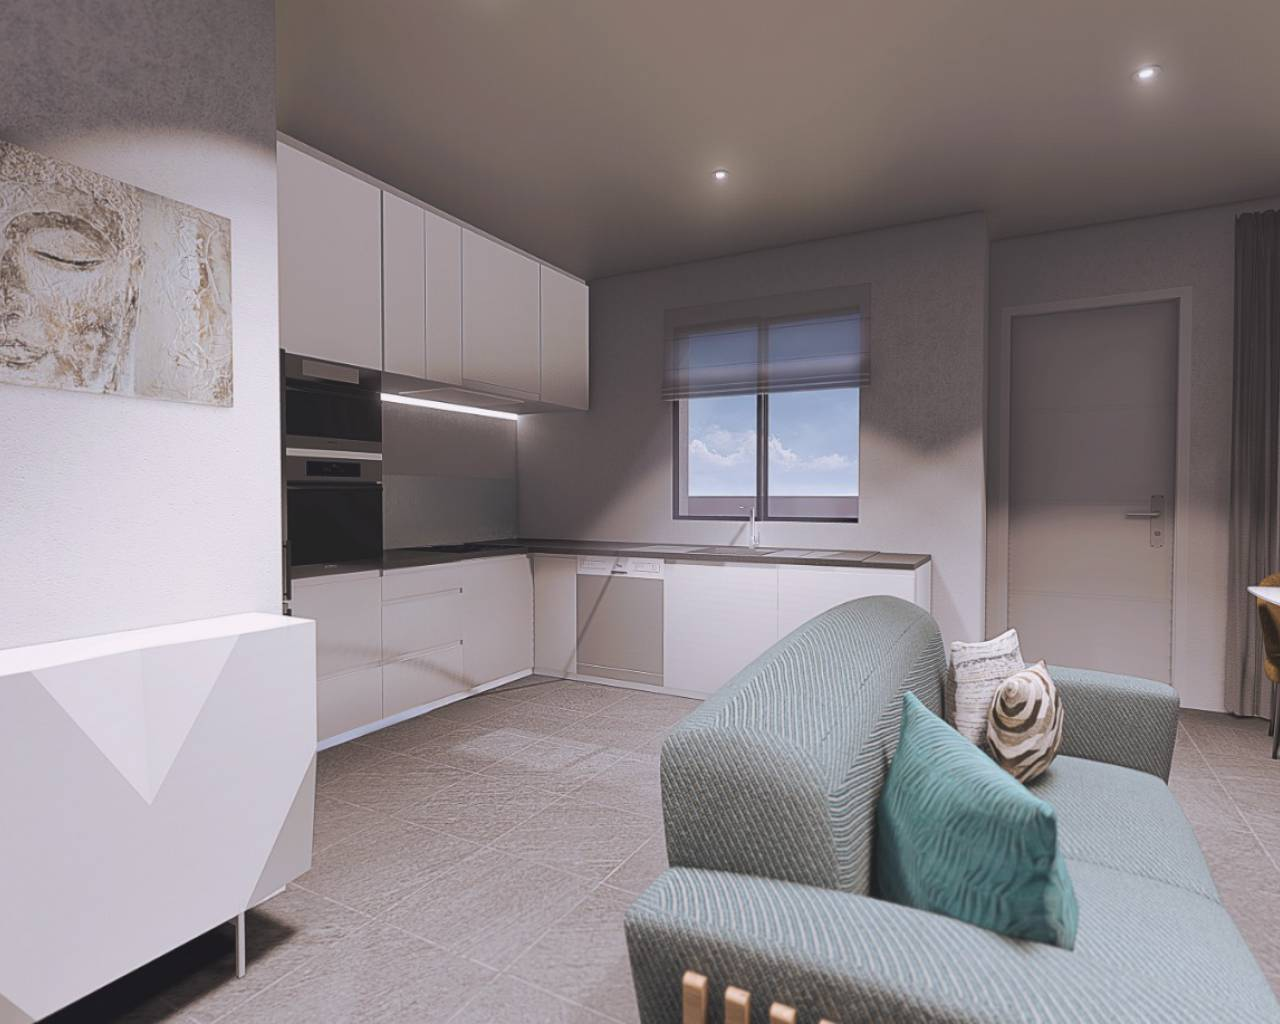 New Build - Townhouse - San Pedro del Pinatar  - San Pedro del Pinatar